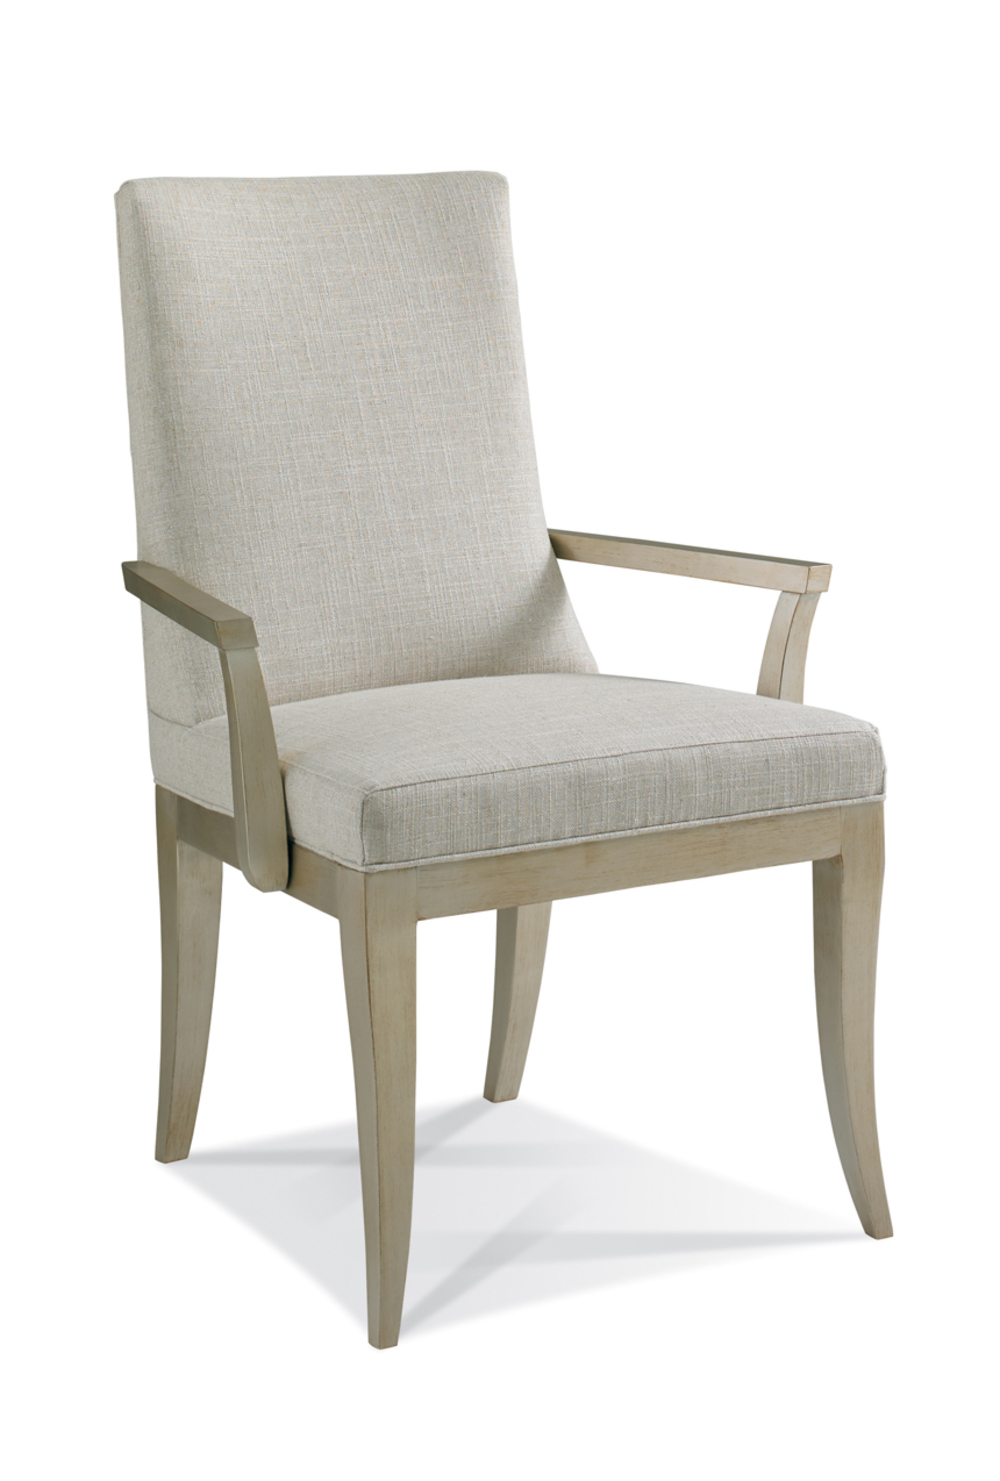 Hickory White - Arm Chair